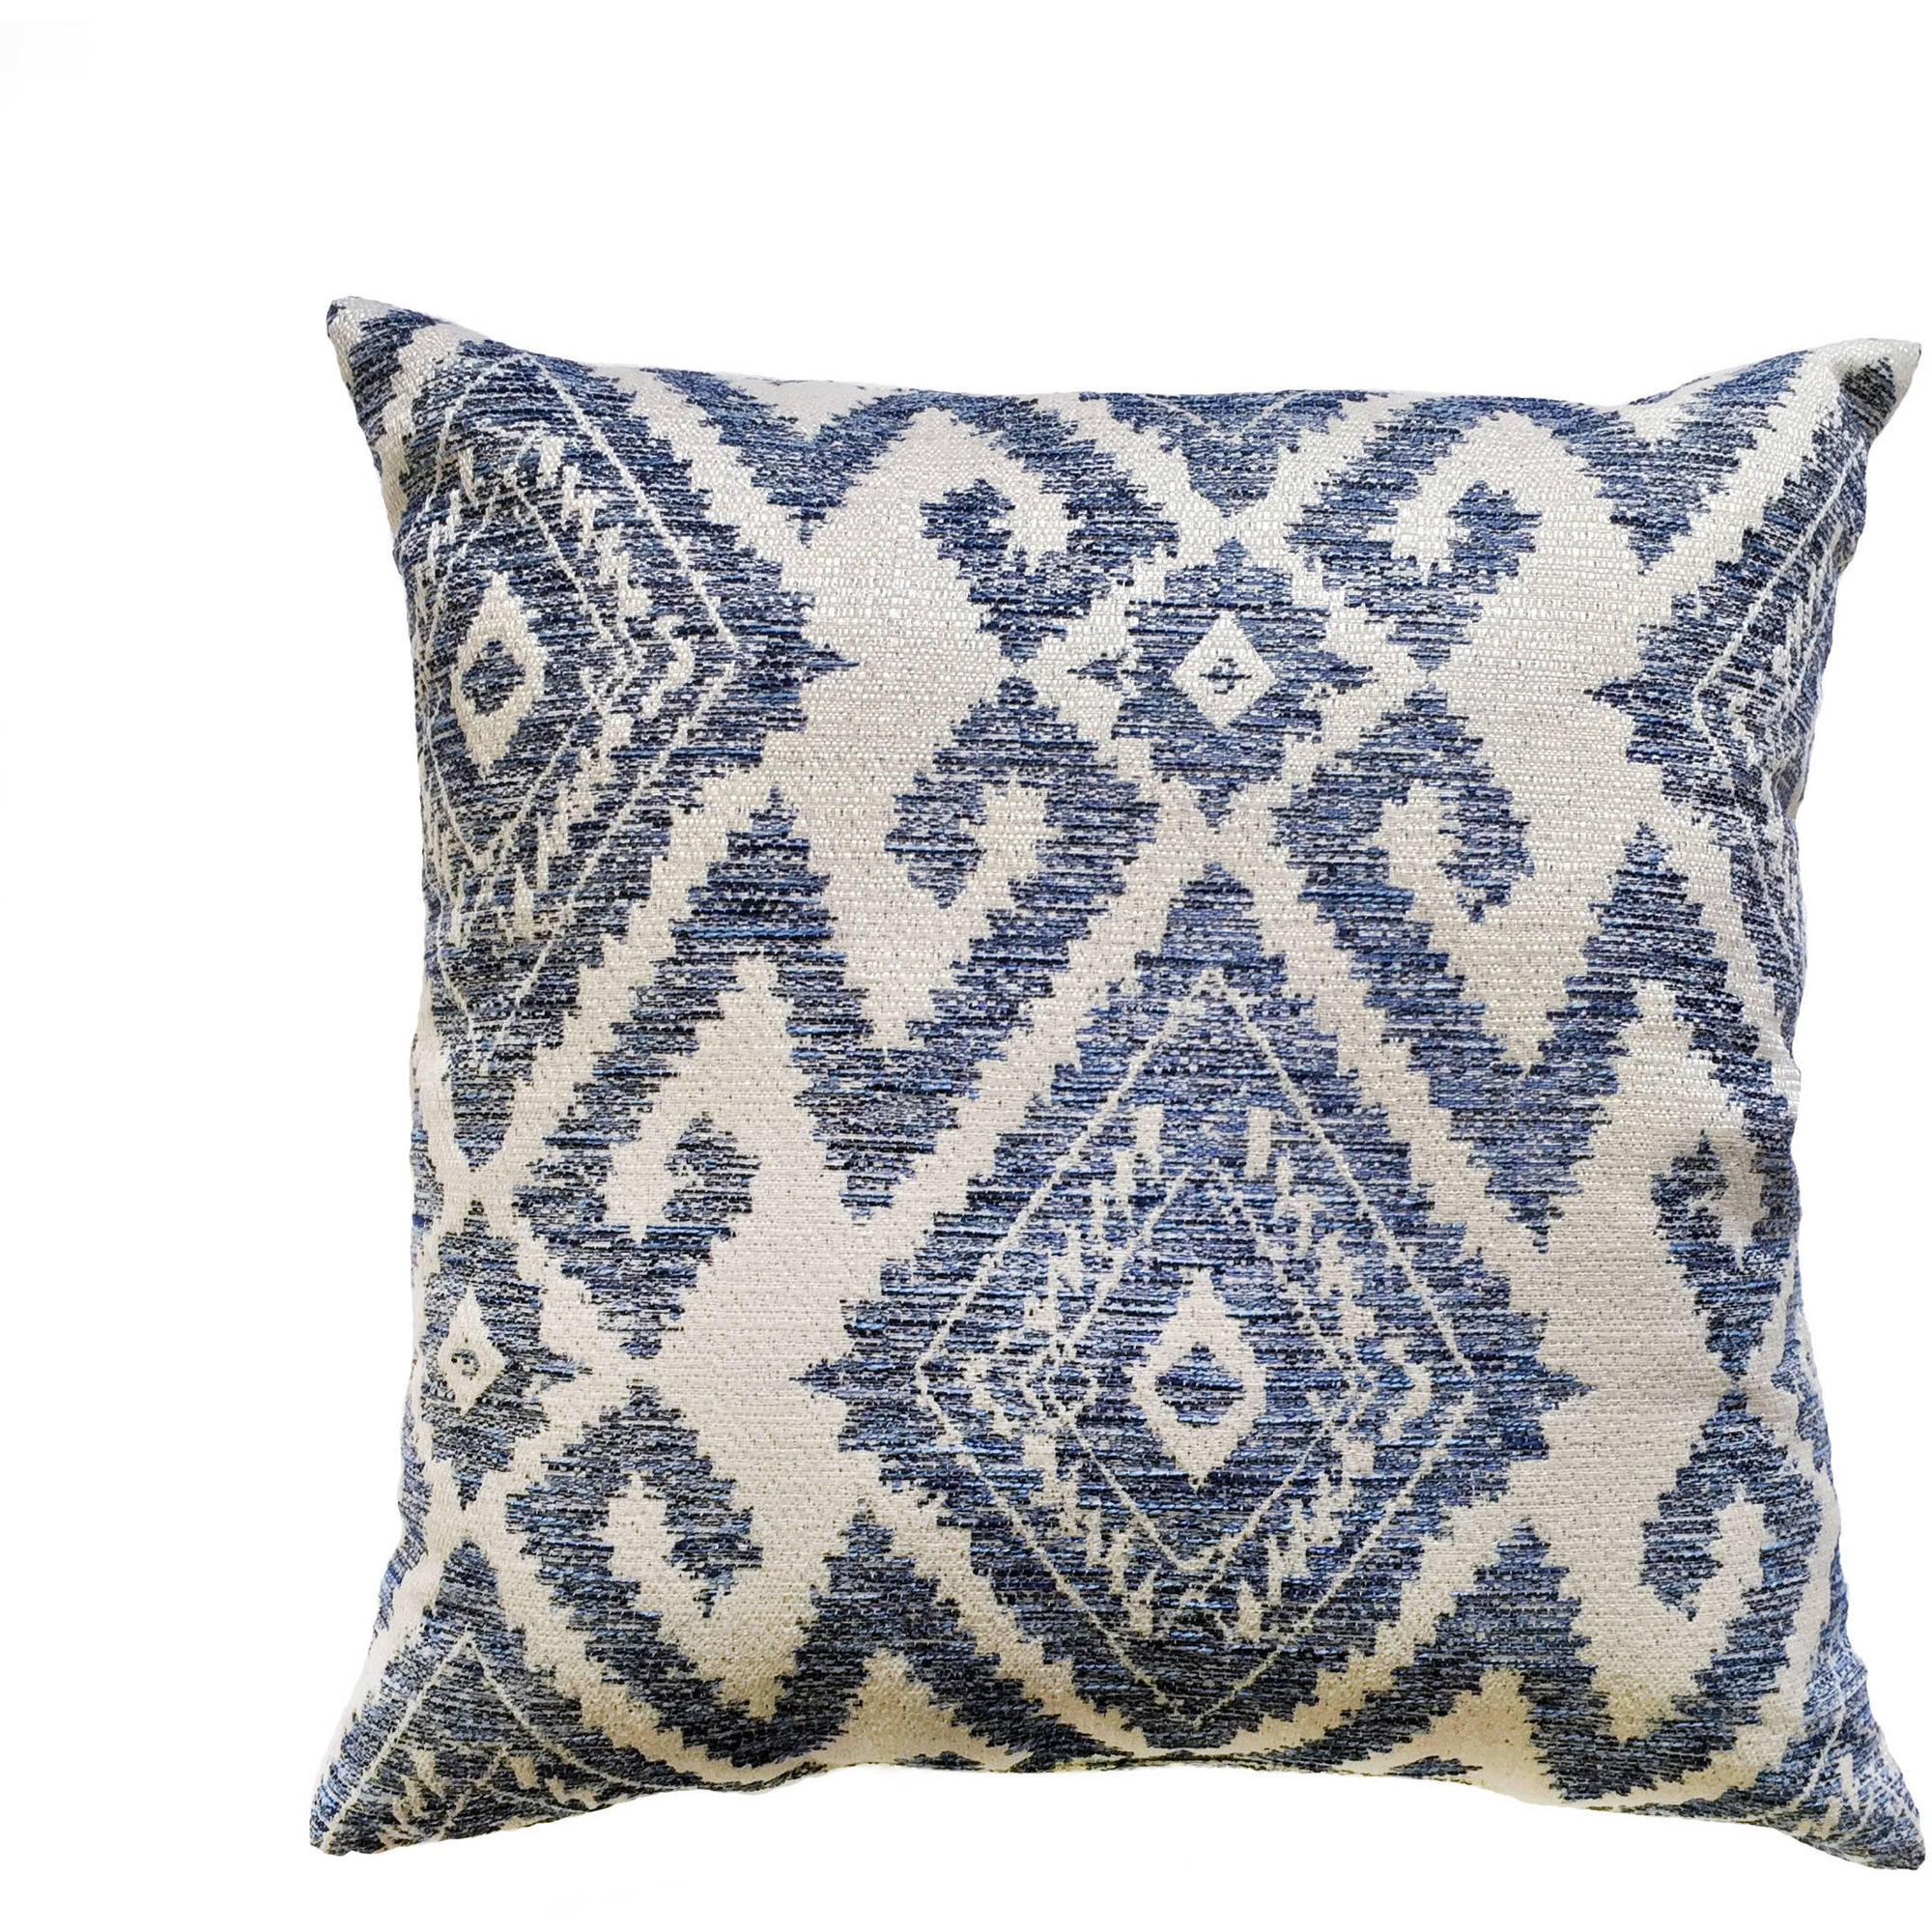 Better Homes and Gardens Indigo Aztec Decorative Pillow